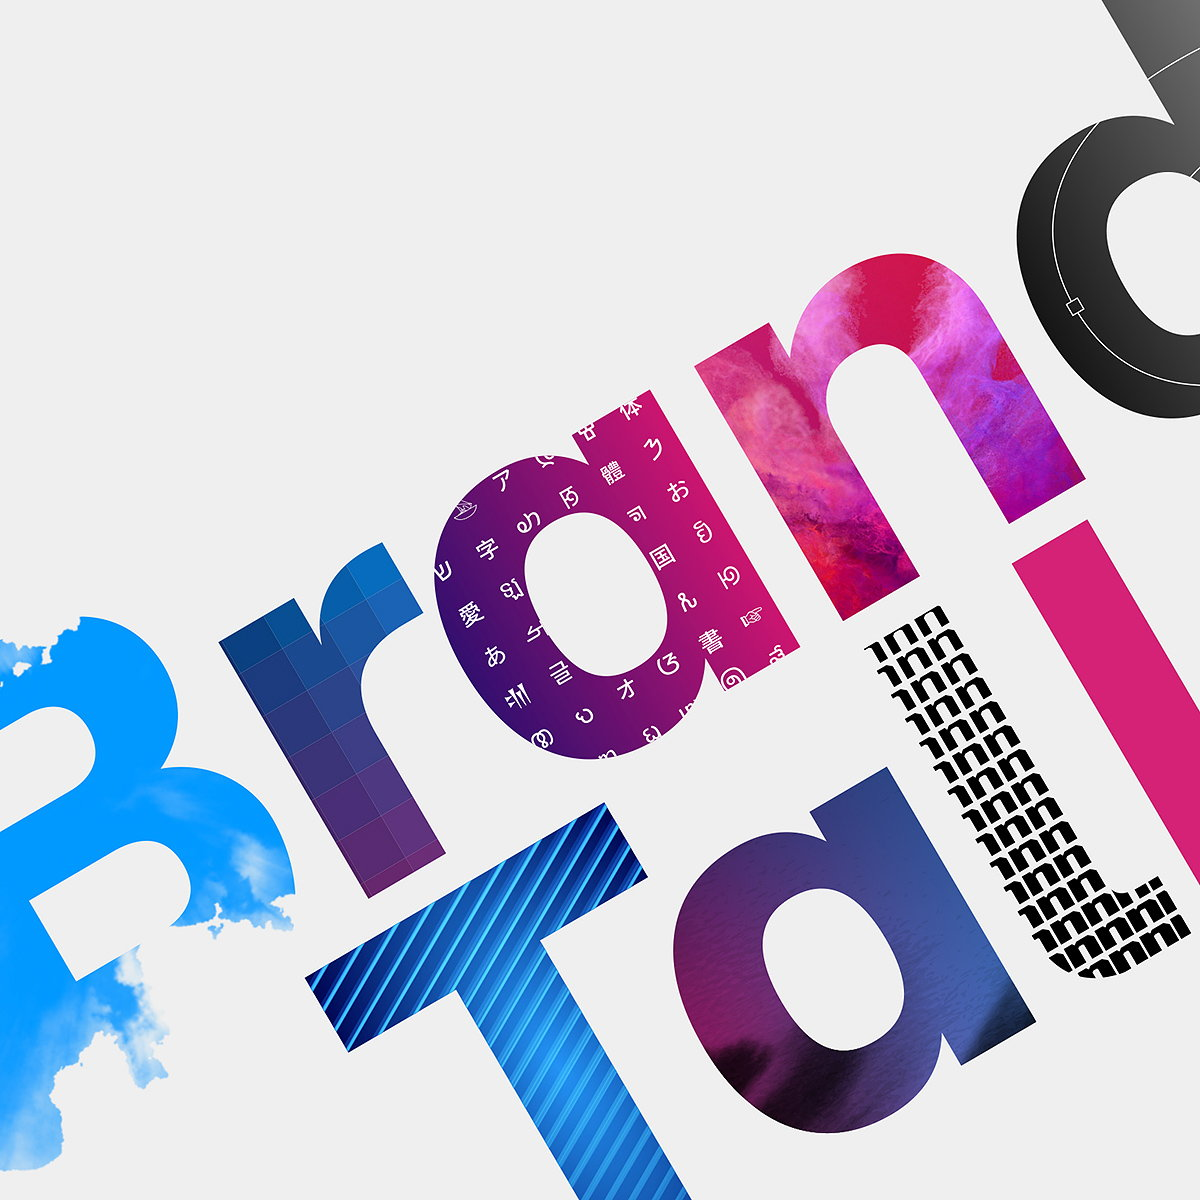 Monotype Announces 'Brand Talks Connected' Virtual Event